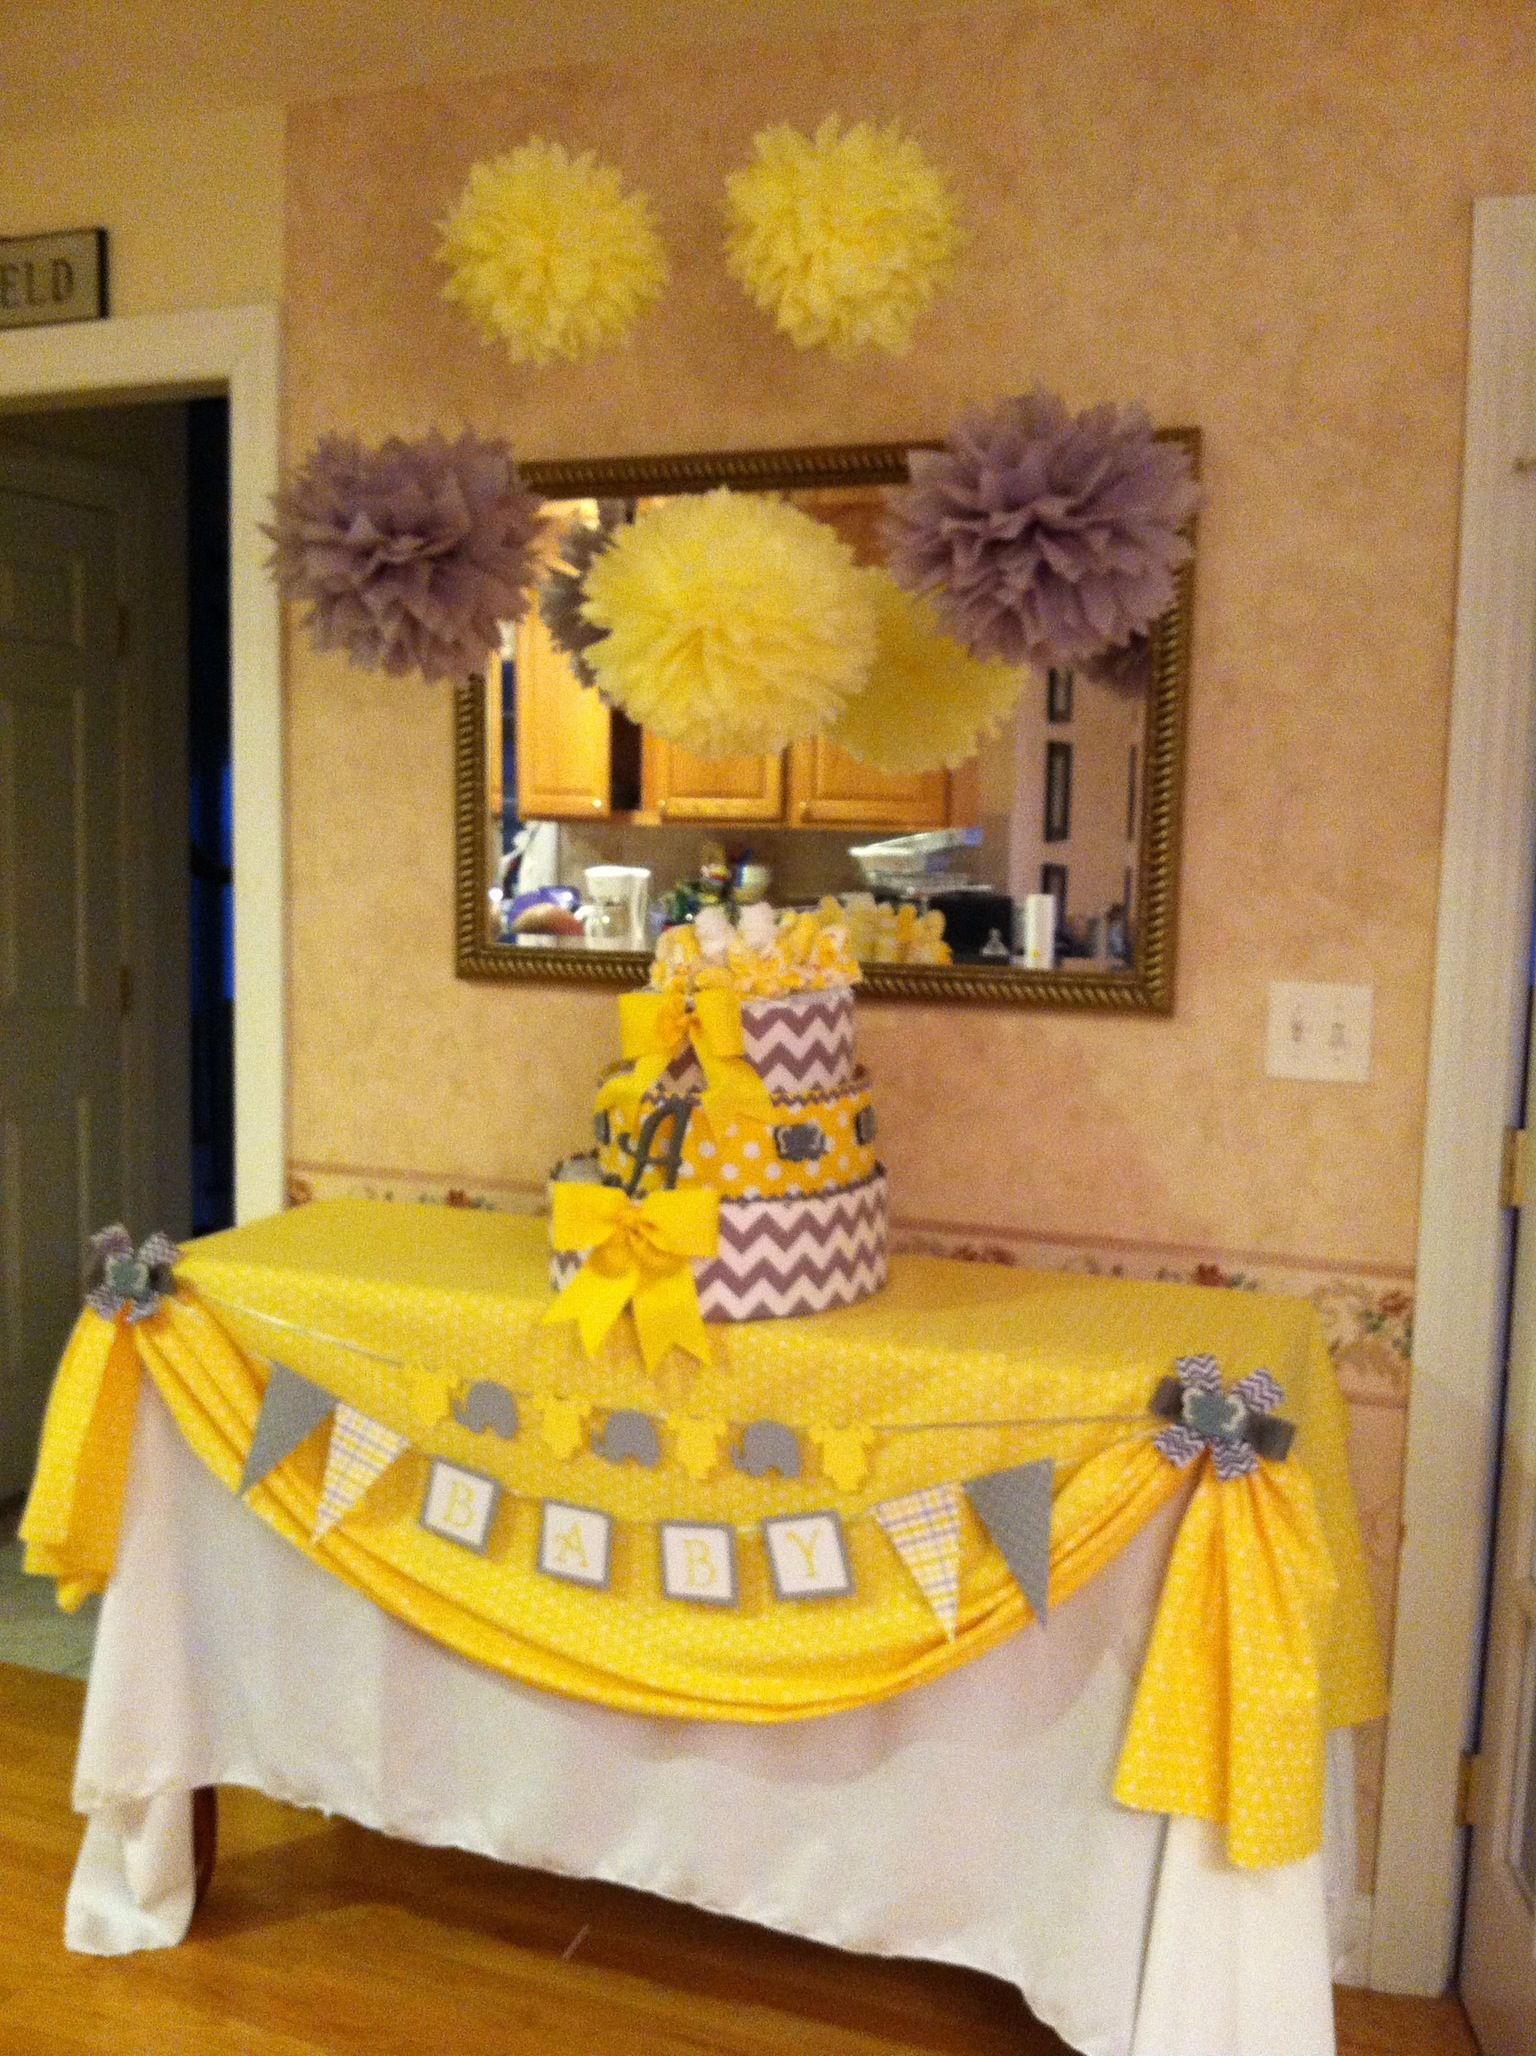 Wrong Colors But Cute Idea For Using Plastic Table Clothes